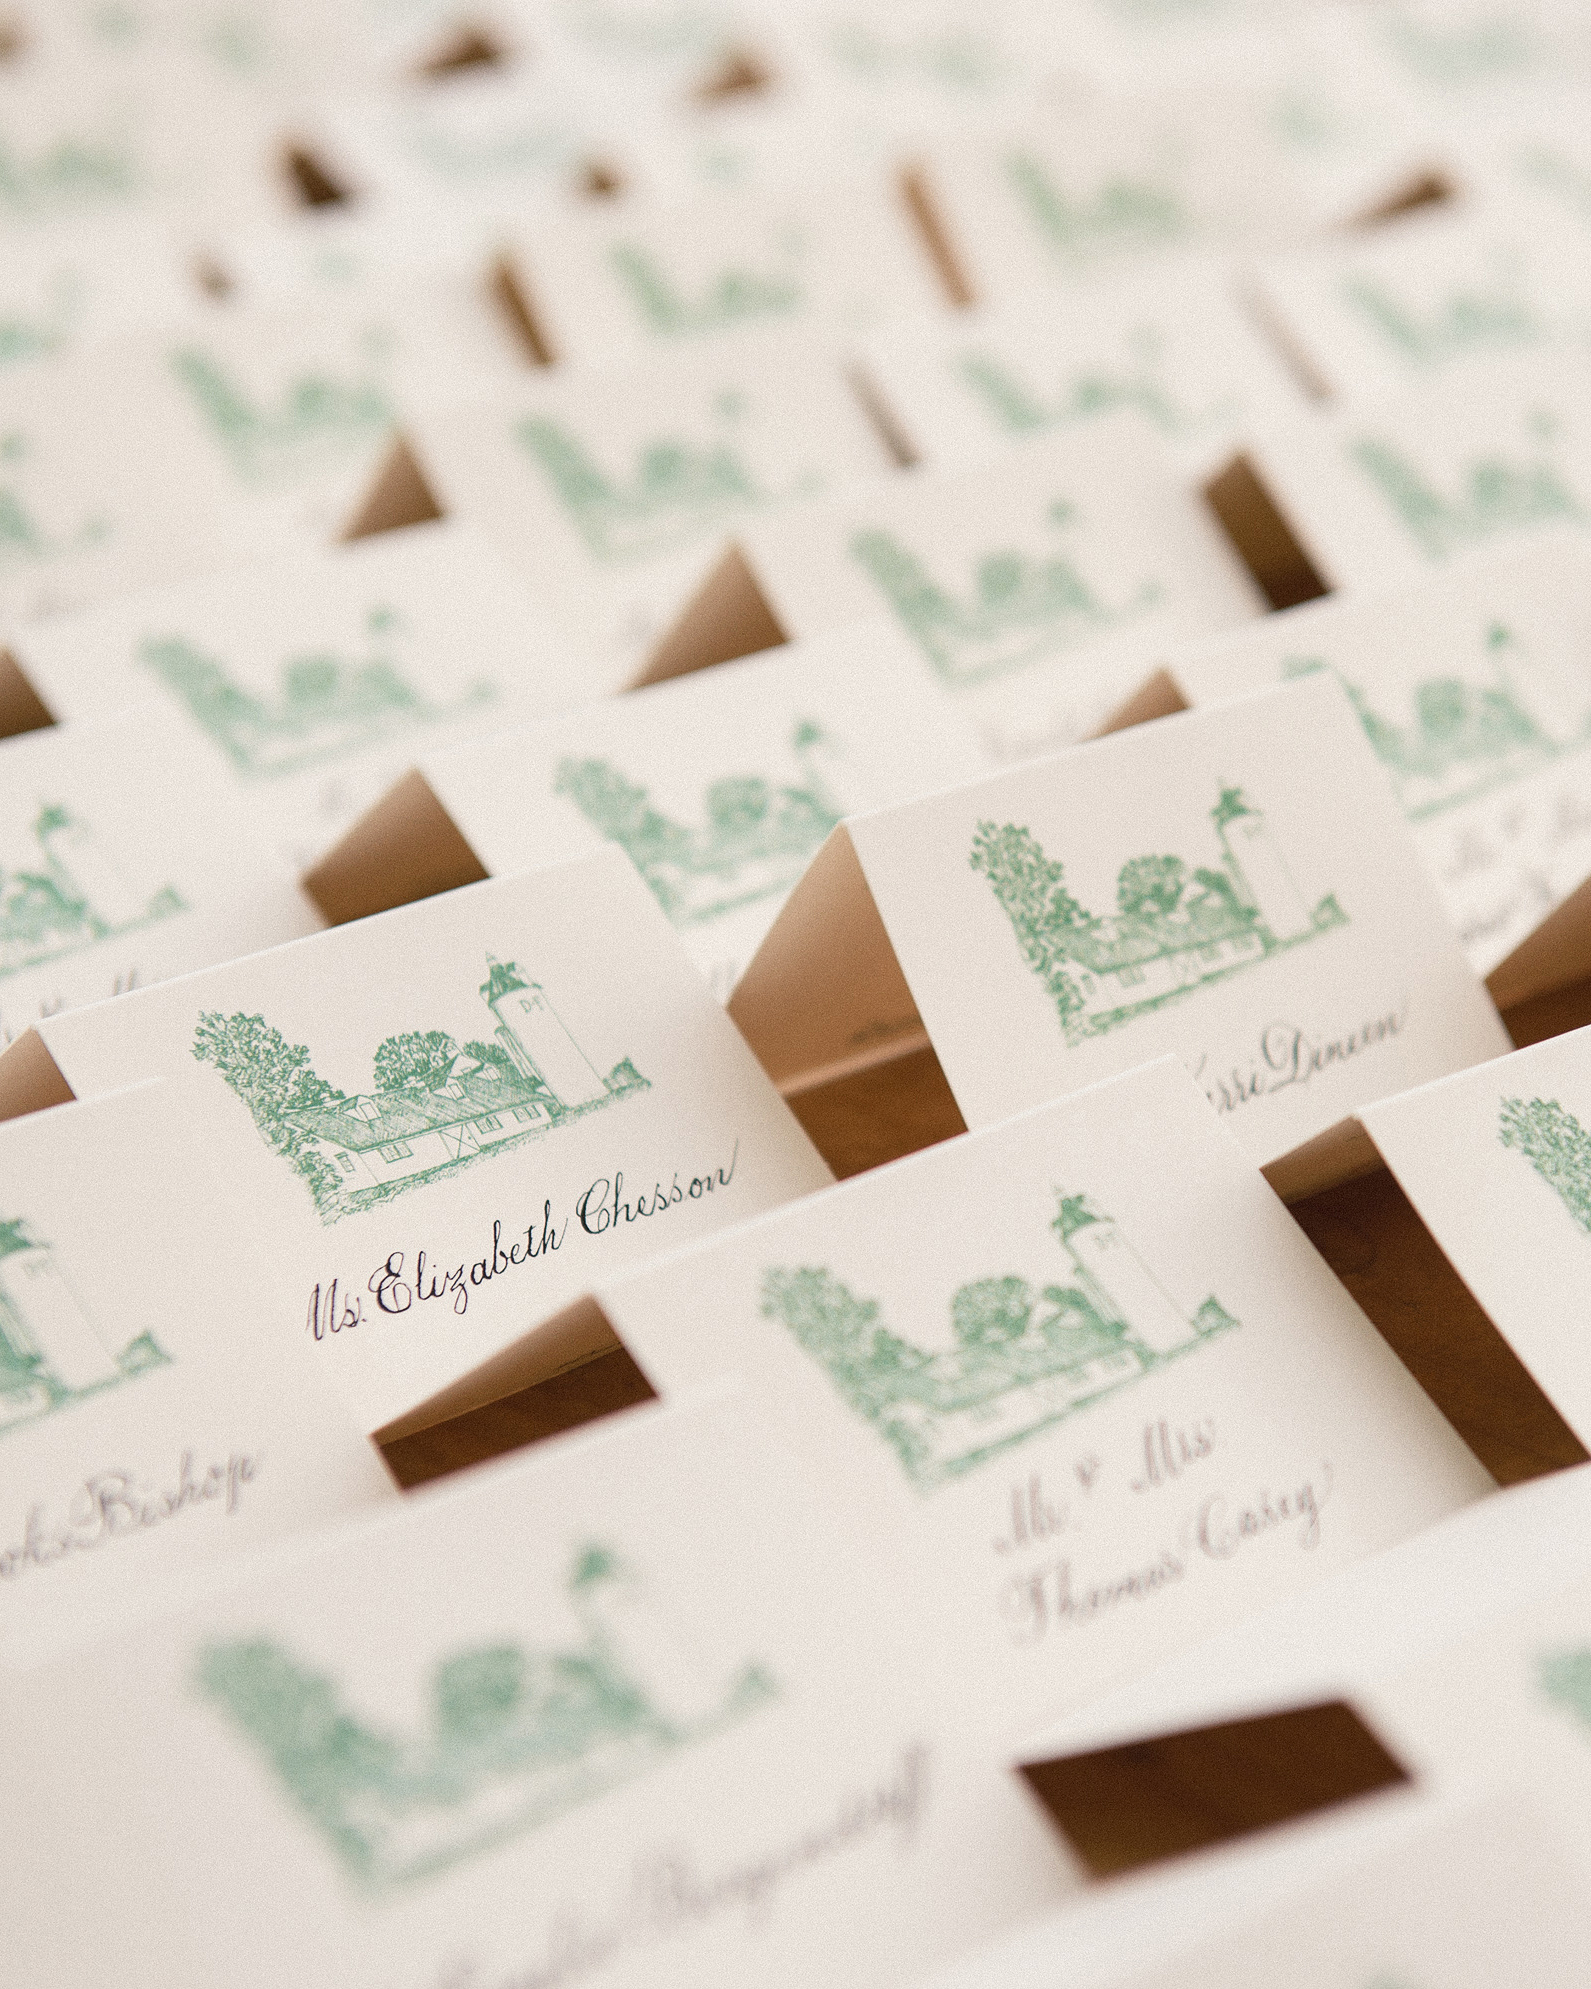 katy andrew wedding escort cards